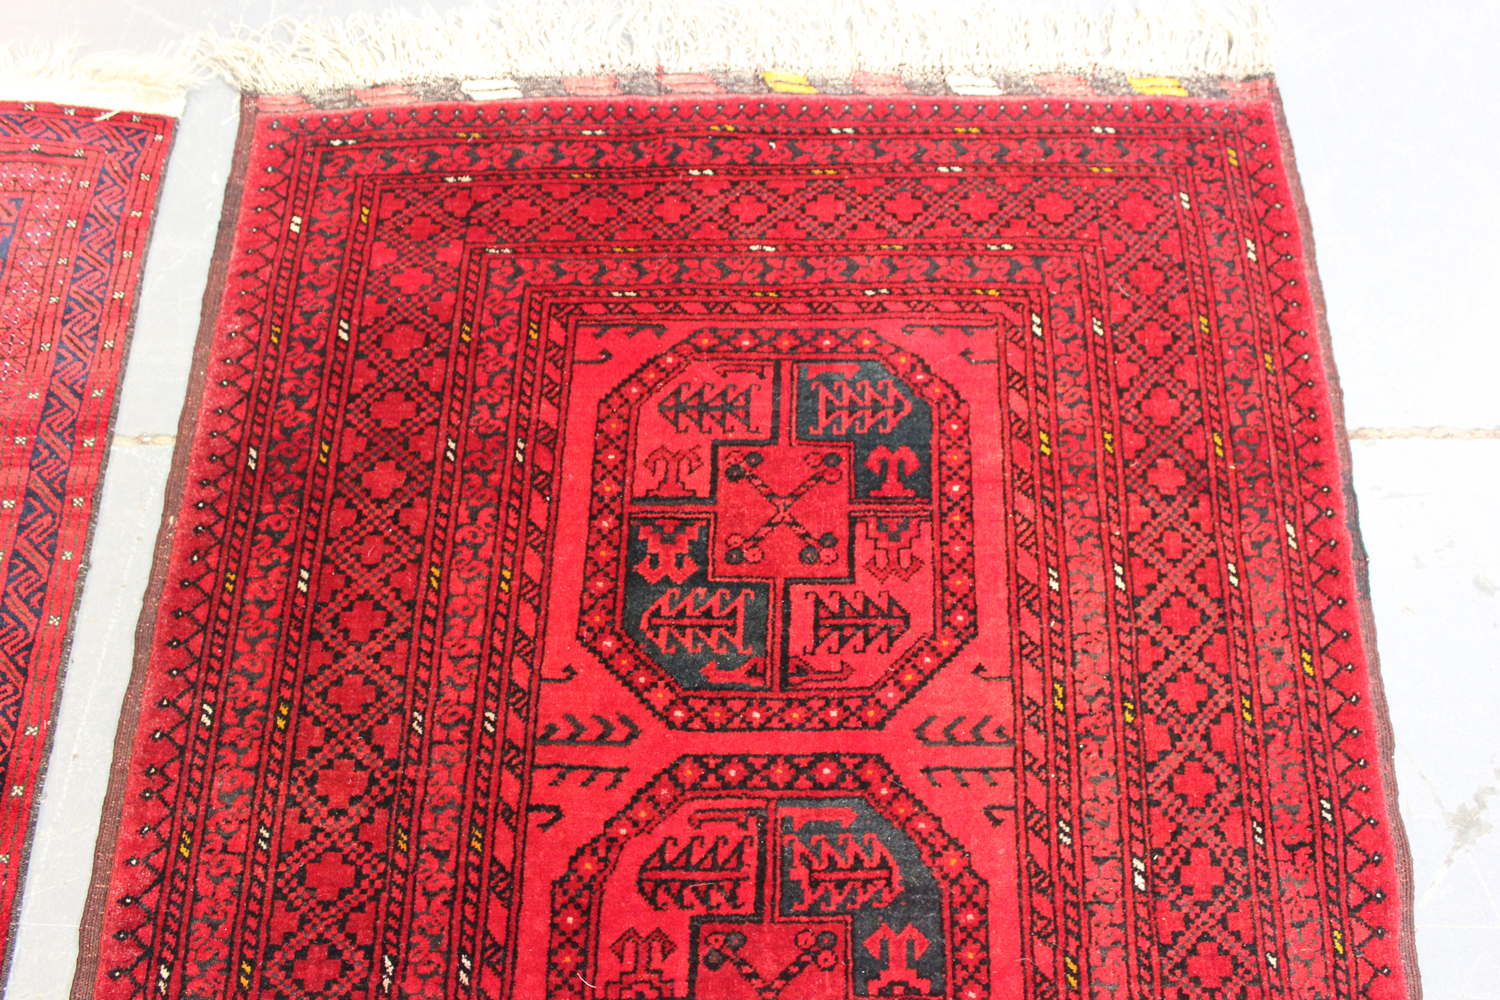 A small Afghan rug, late 20th century, 160cm x 102cm, together with another similar Afghan rug, - Image 3 of 4